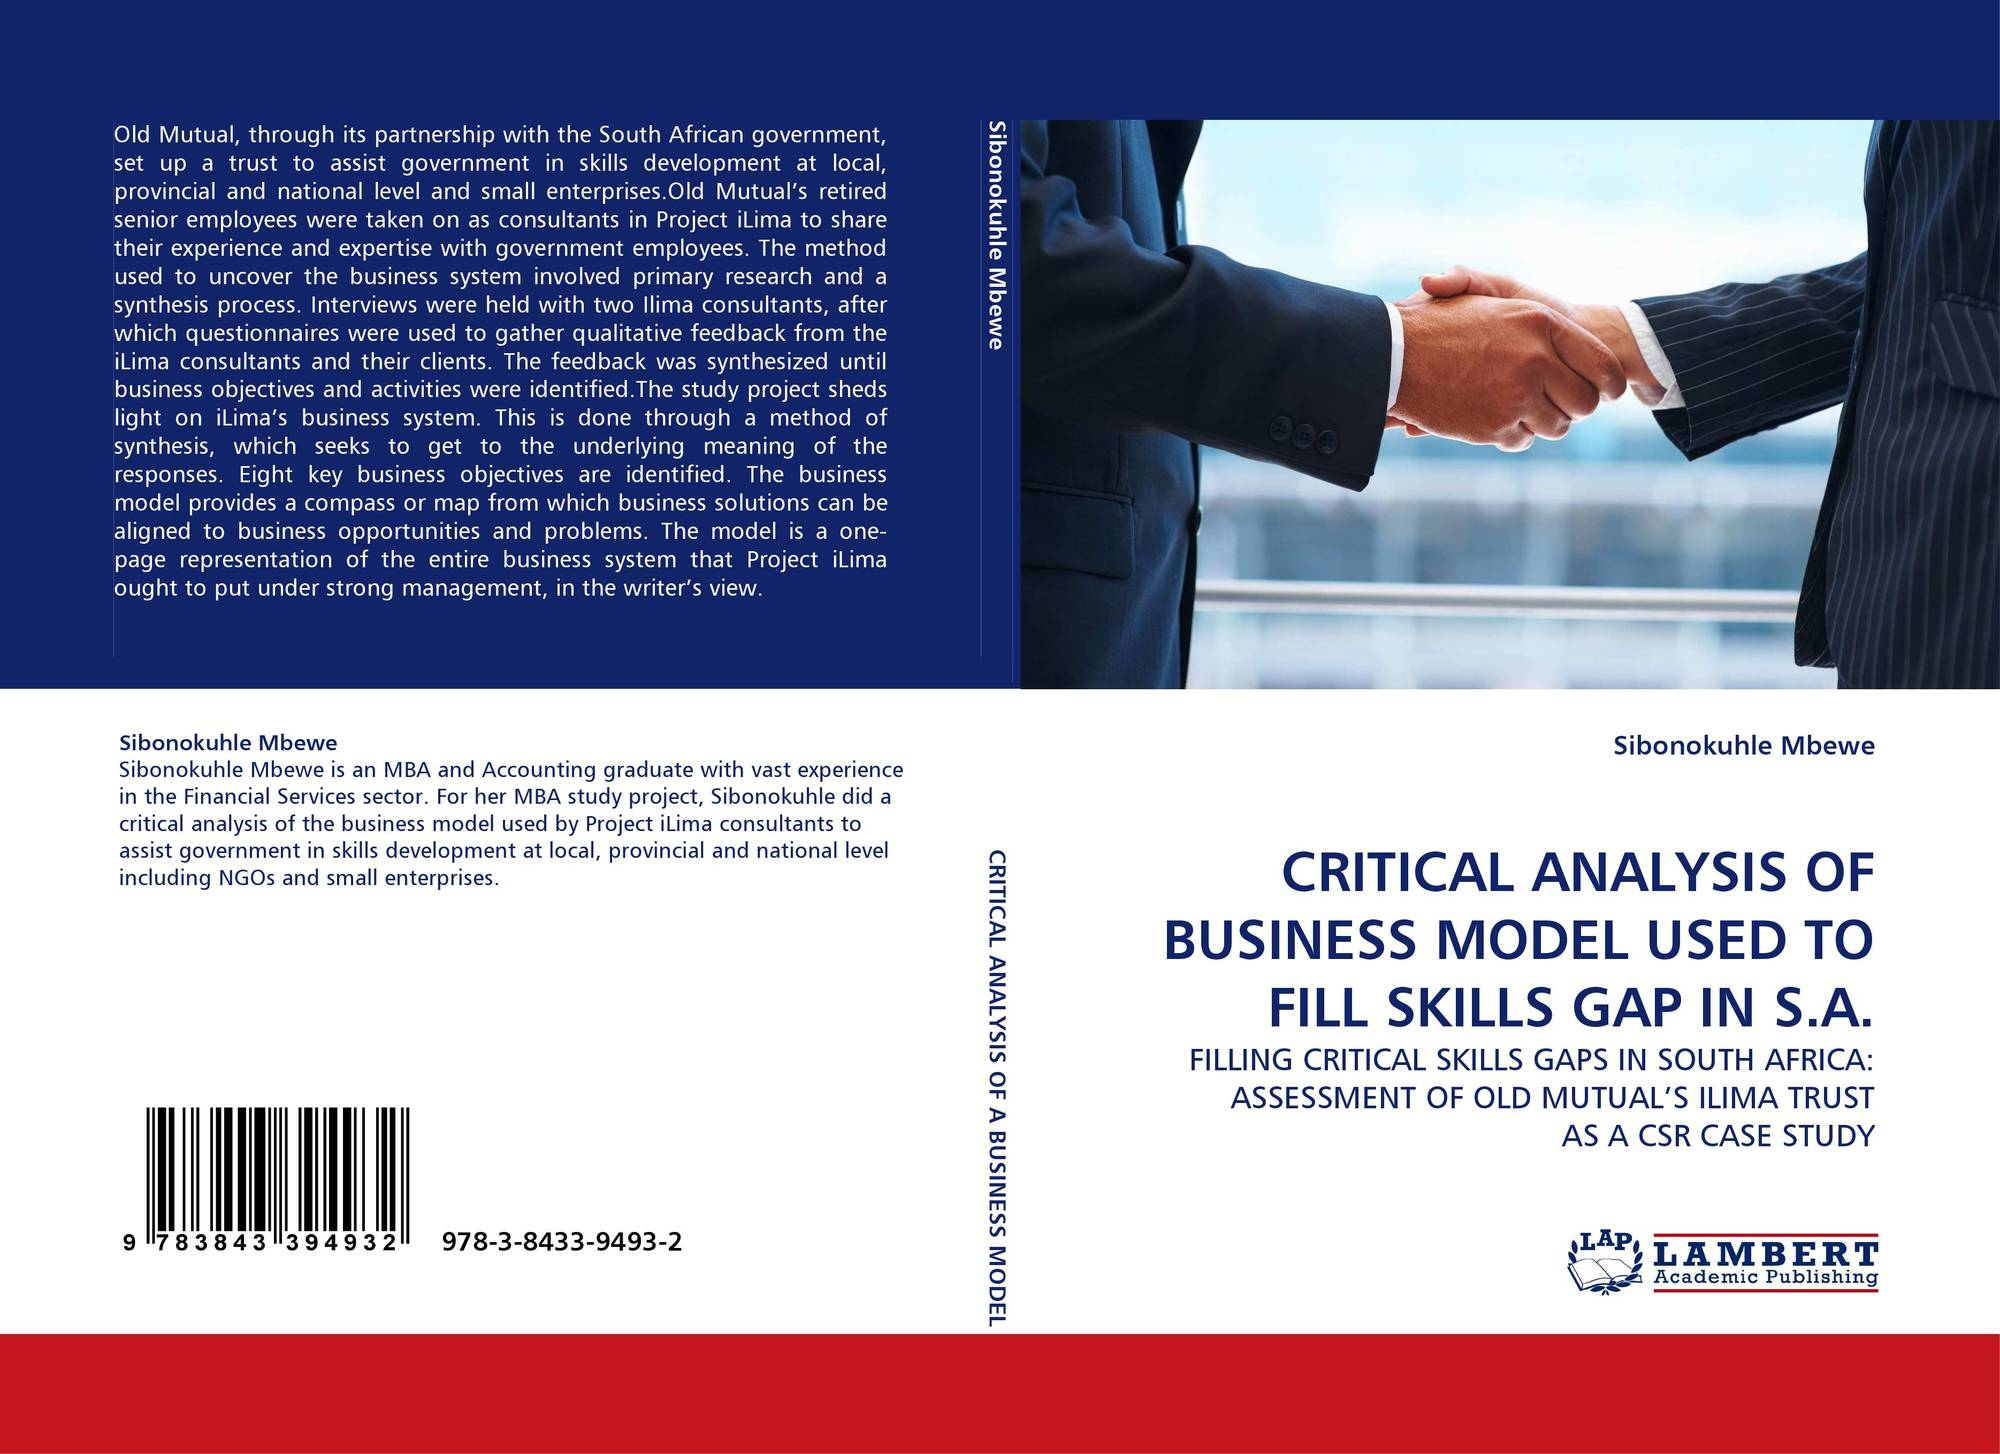 analysis of business model